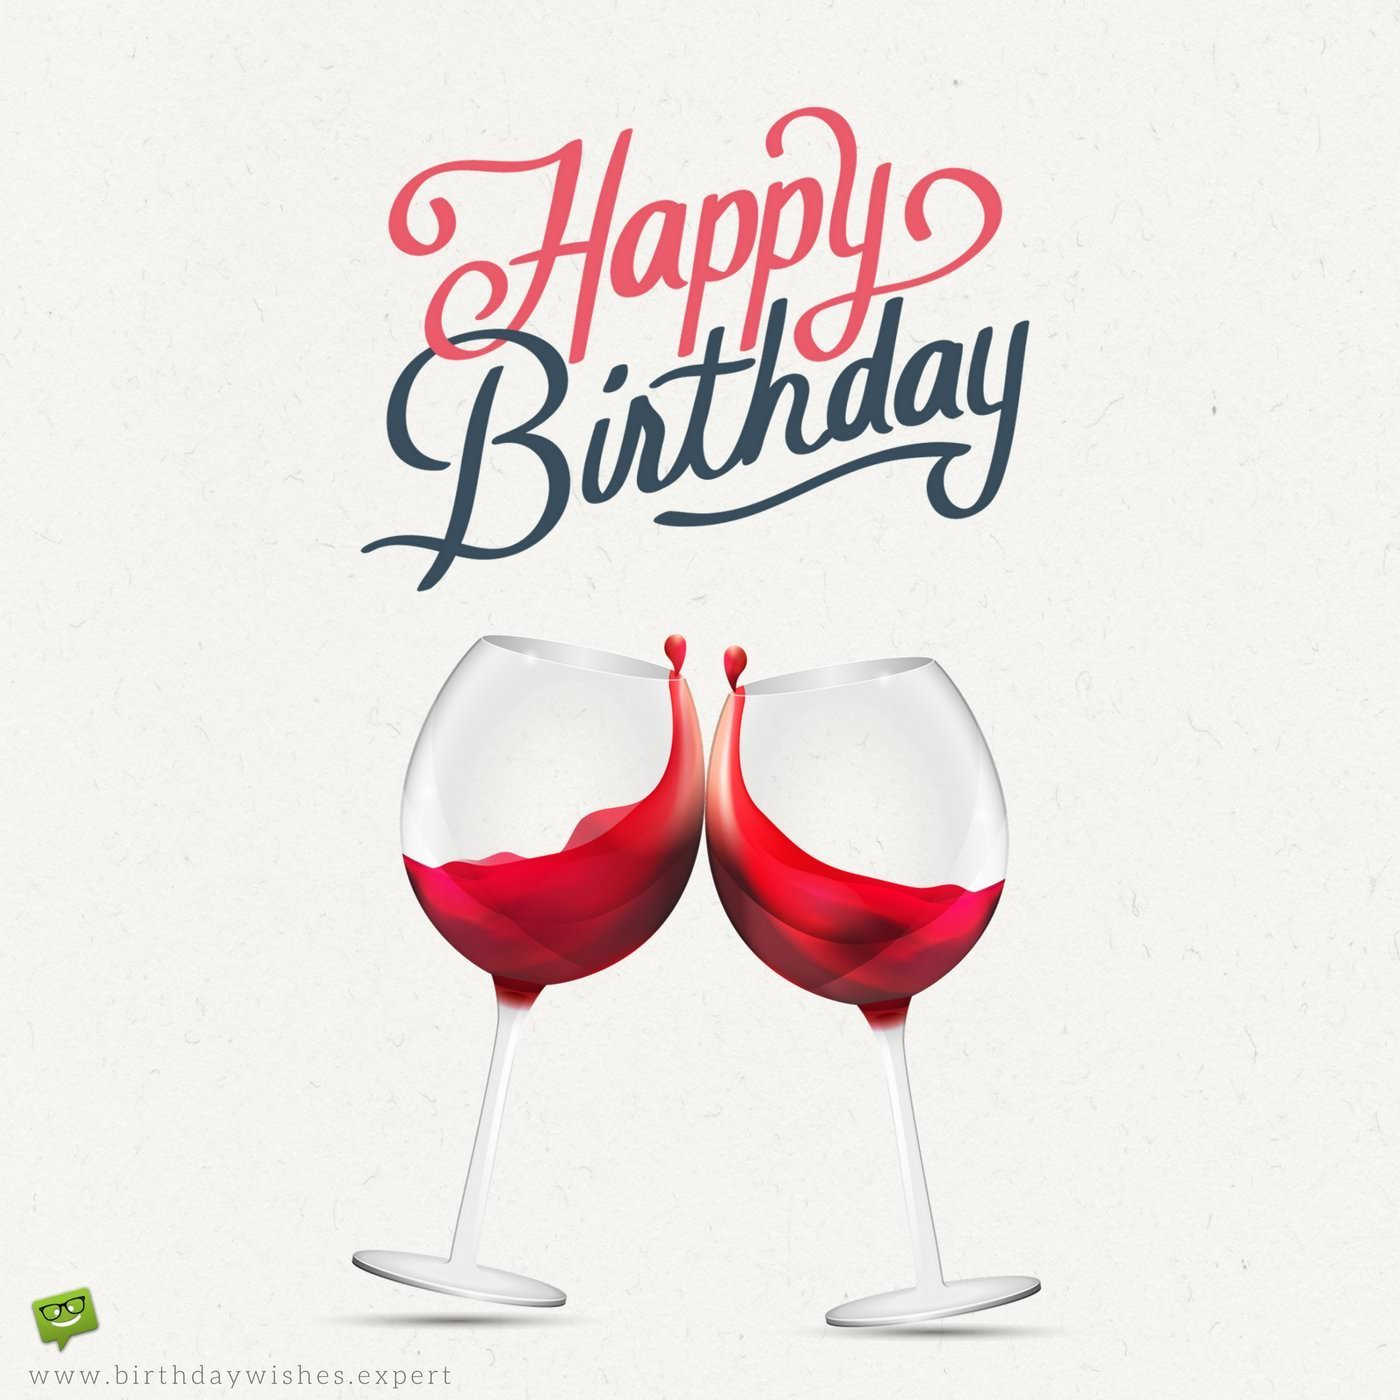 happy birthday glass of wine ; Romantic-birthday-wish-for-husband-on-image-with-two-glasses-of-red-wine